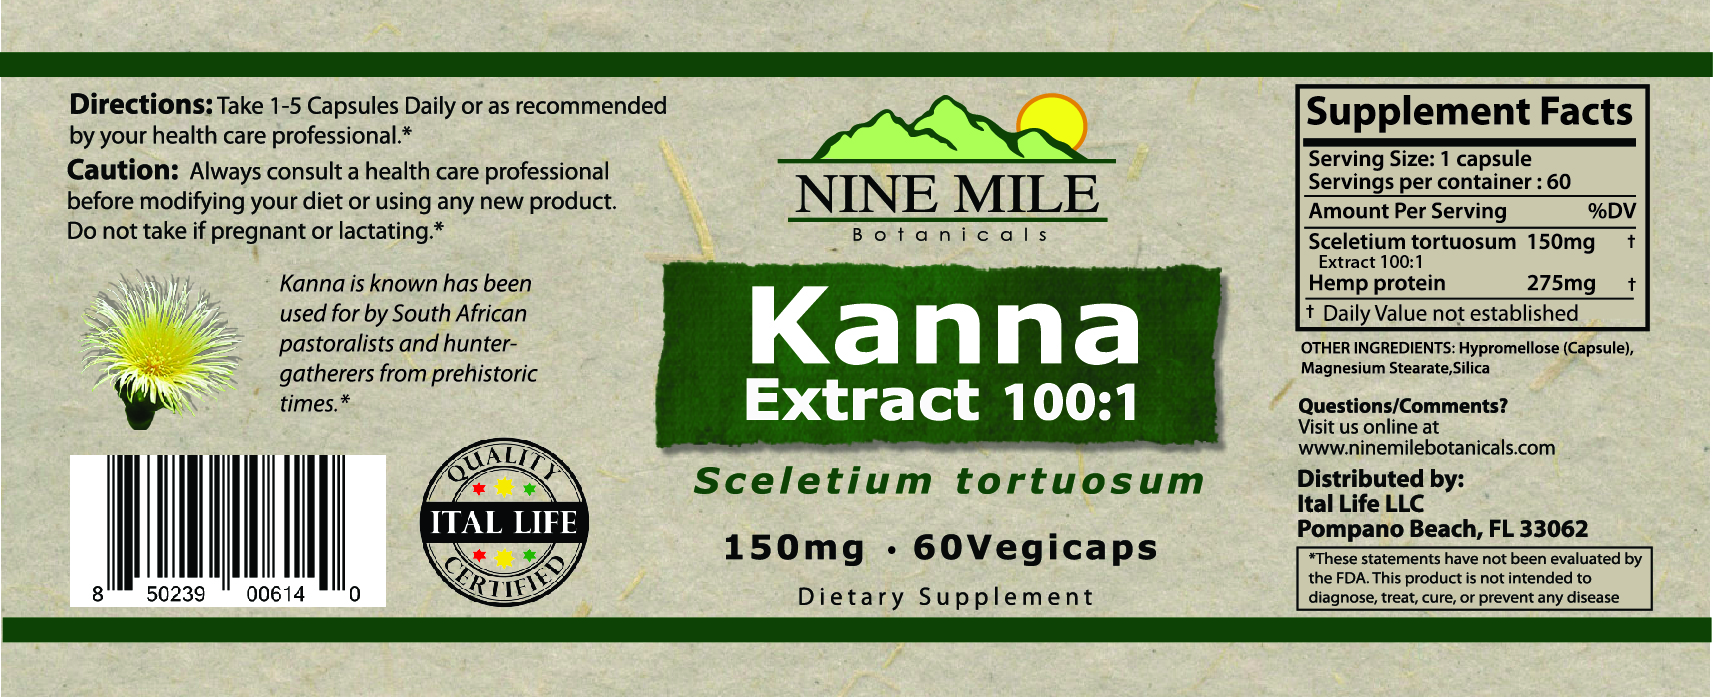 Nine Mile Botanicals Kanna label